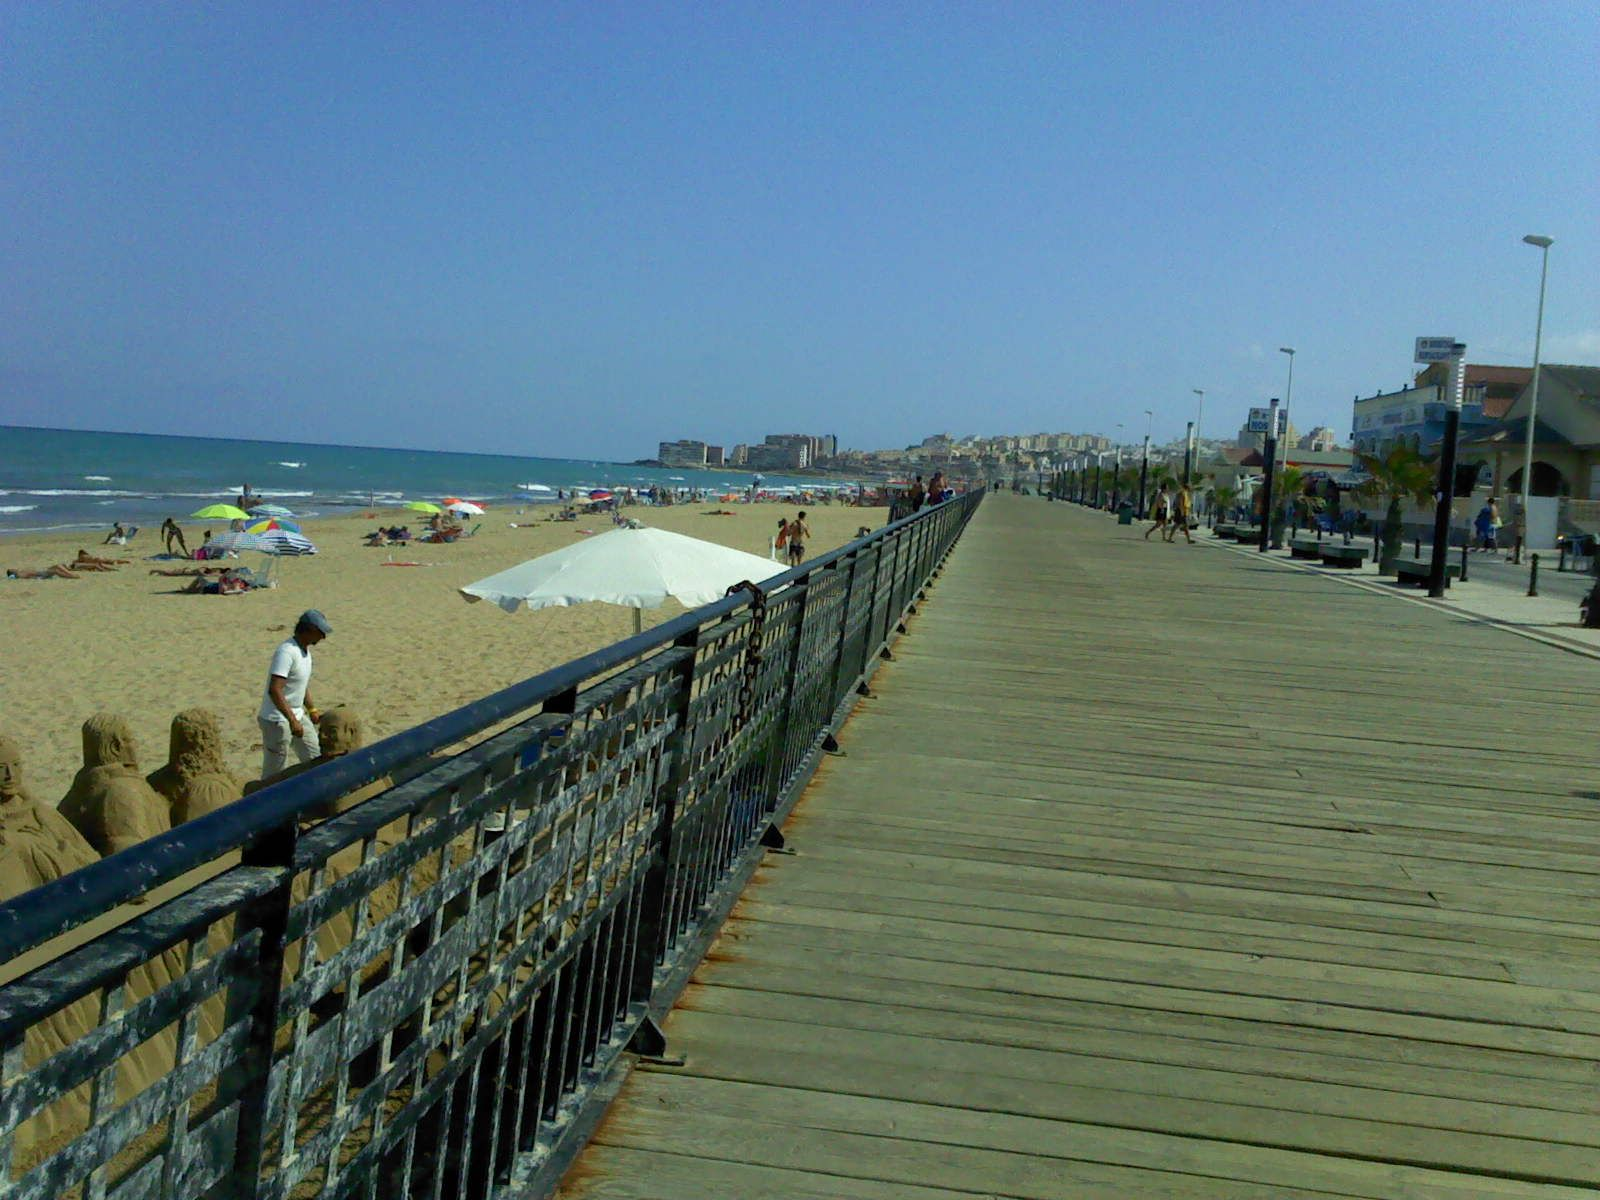 The Boardwalk At La Mata Spain Been To La Mata Three Times Love The Laid Back Feel Of The Place Not Such A Great Hike Back To The Appartment Through The